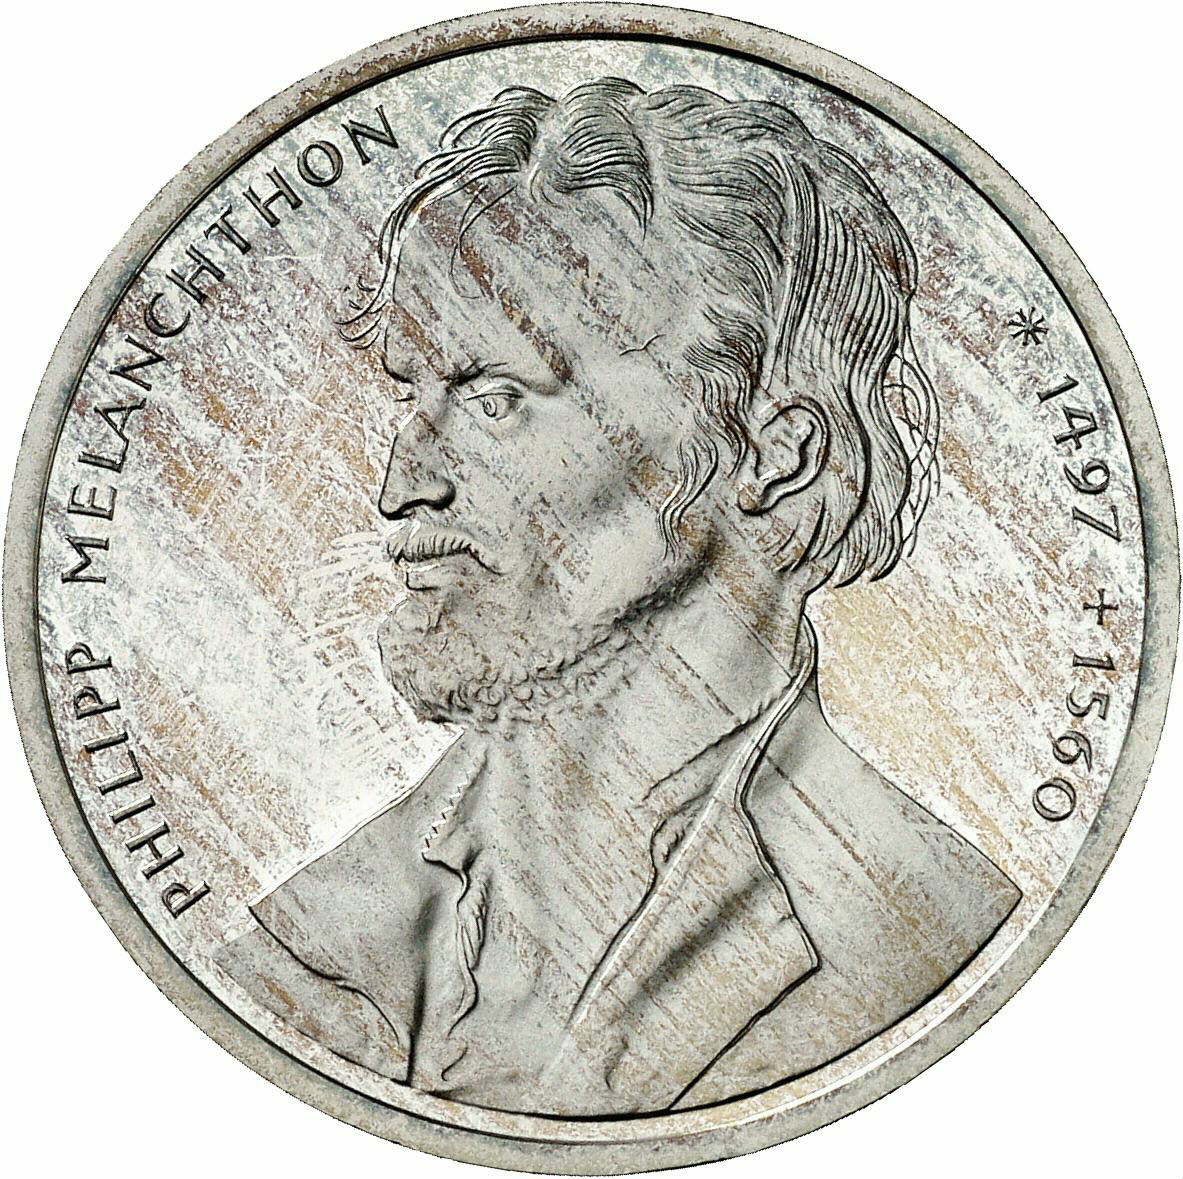 DE 10 Deutsche Mark 1997 D